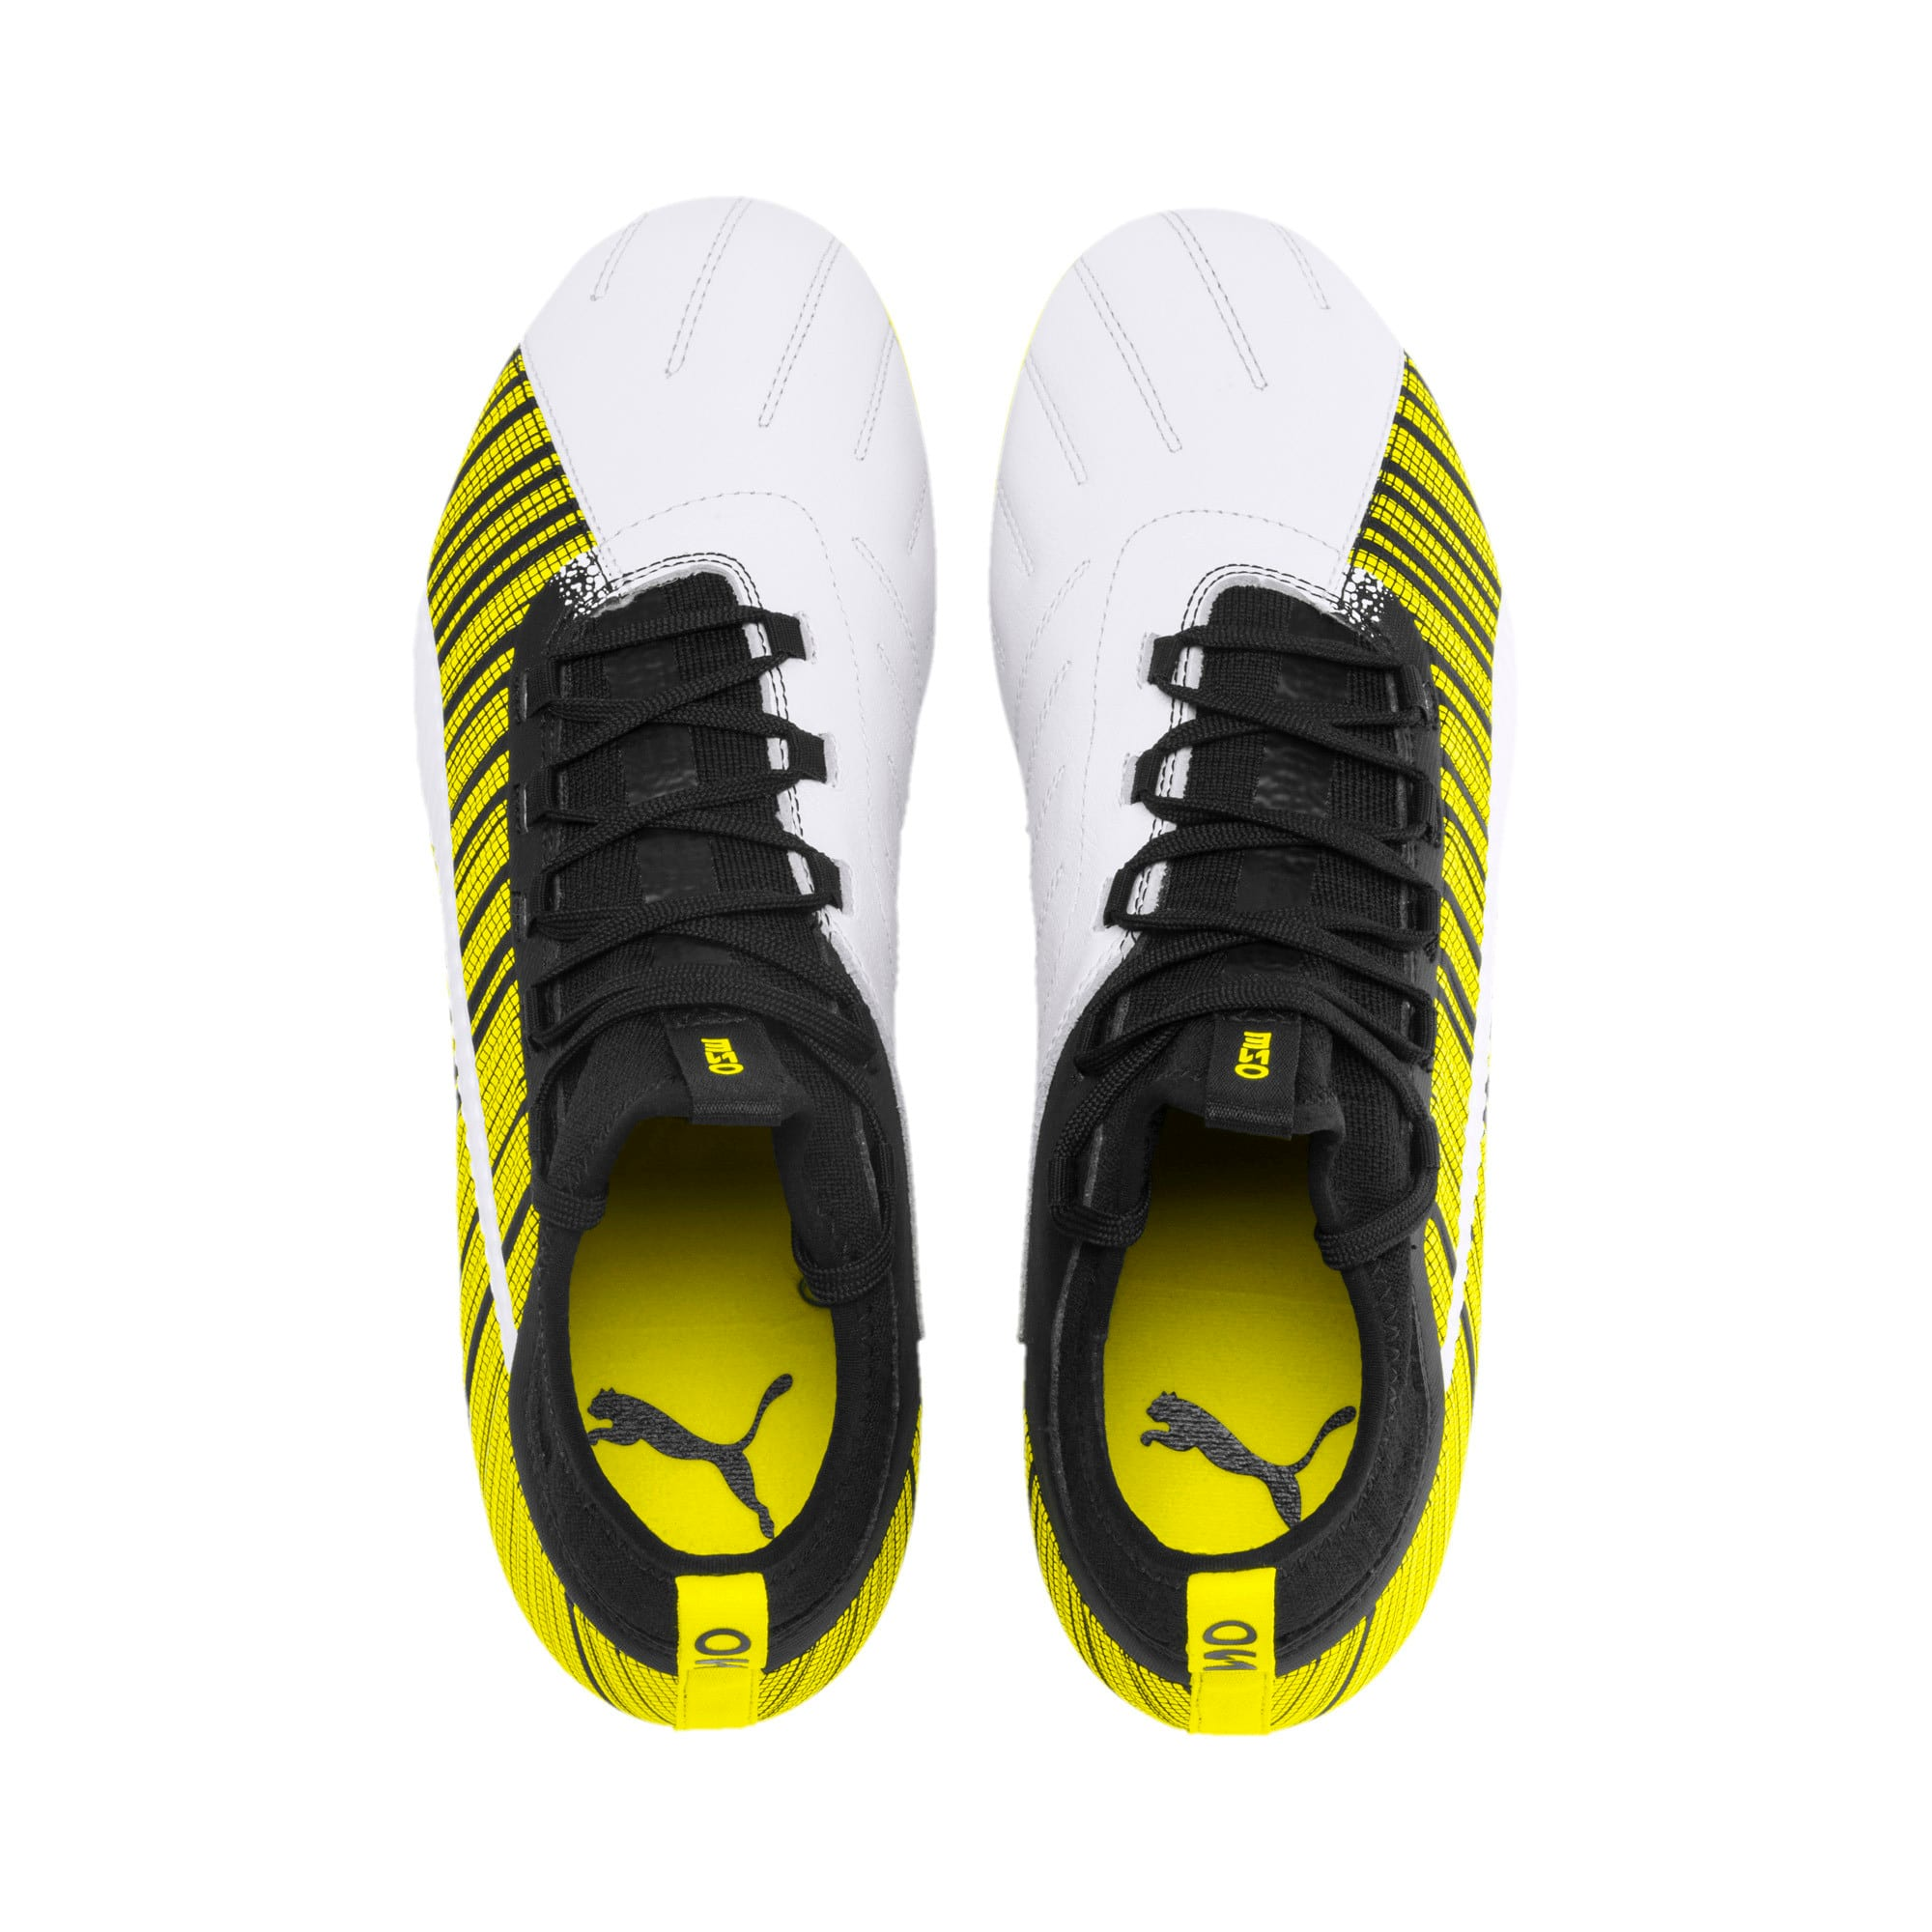 Thumbnail 7 of PUMA ONE 5.3 FG/AG voetbalschoenen voor heren, White-Black-Yellow Alert, medium